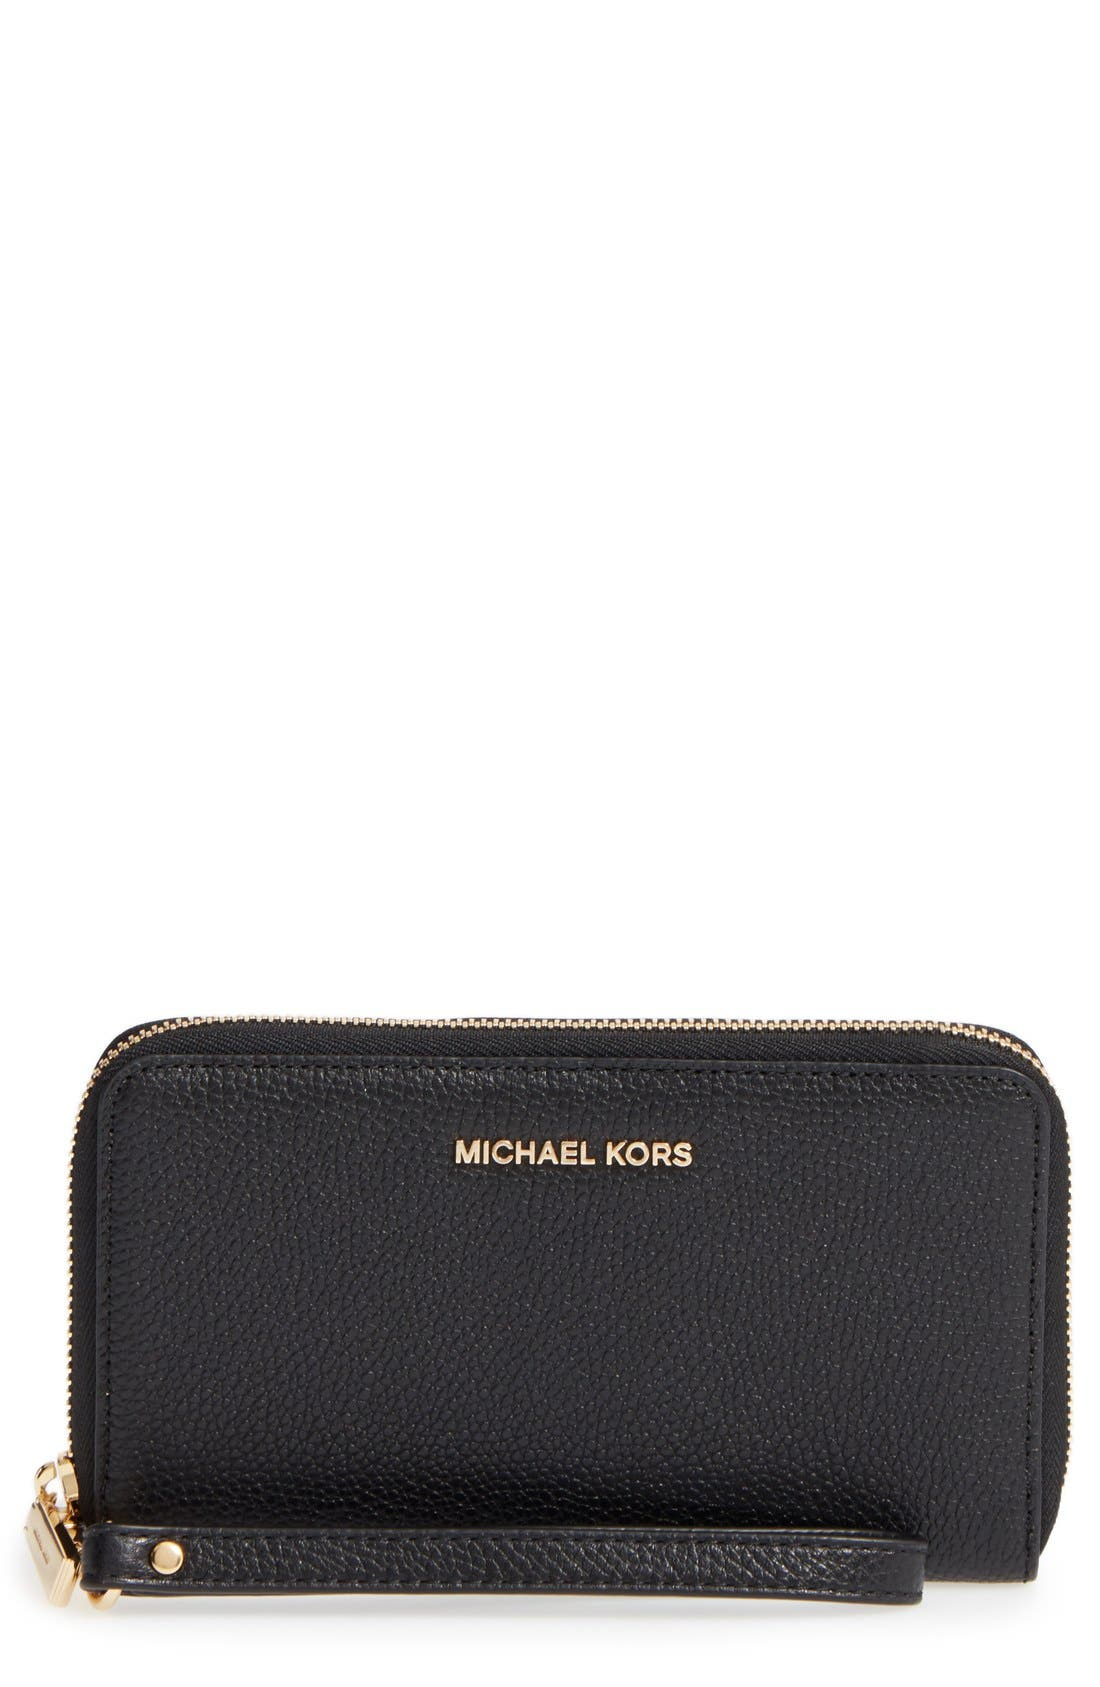 MICHAEL MICHAEL KORS Mercer Large Leather Tech Wristlet